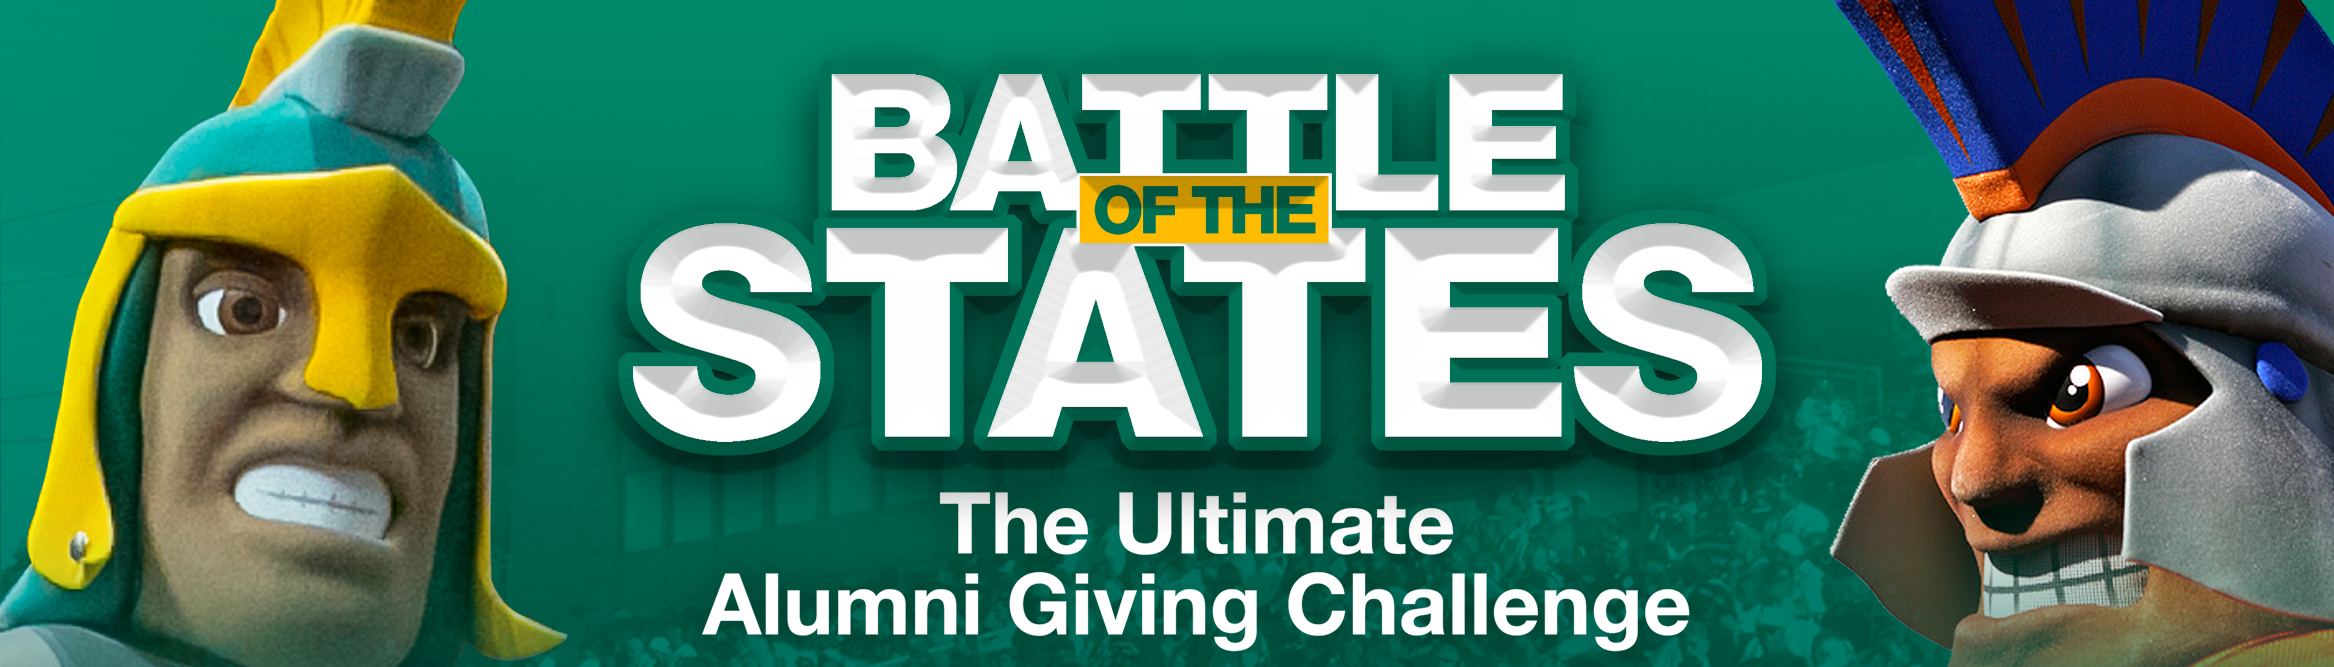 battle of states - the ultimate giving challenge